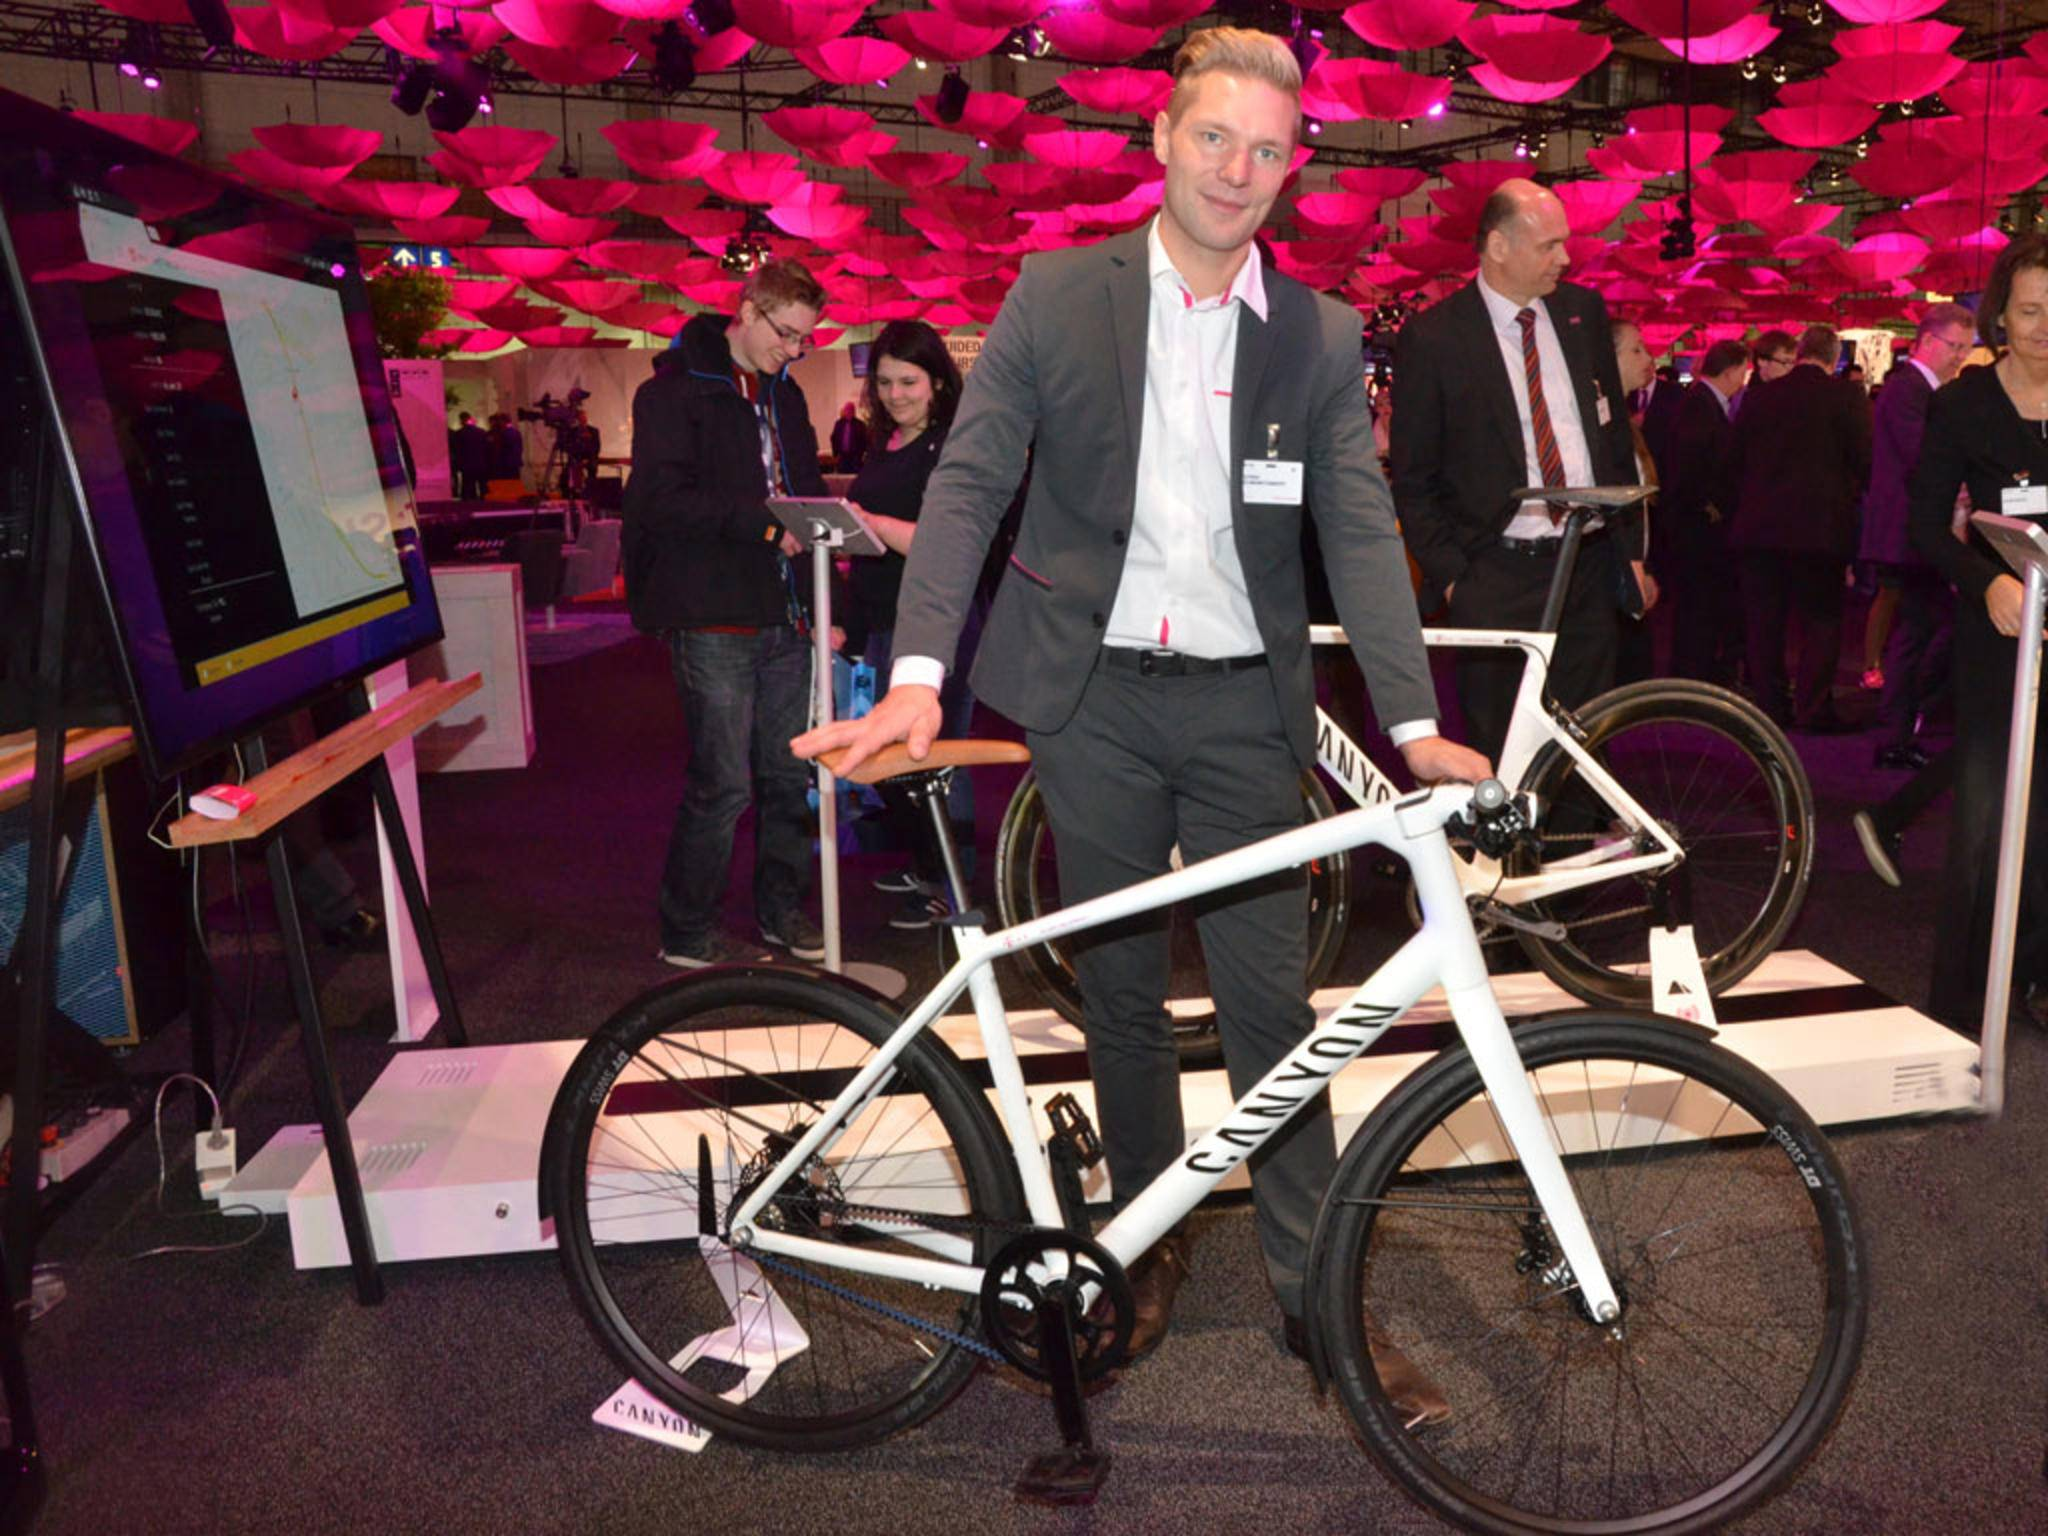 Das connected bike der Telekom auf der CeBIT.